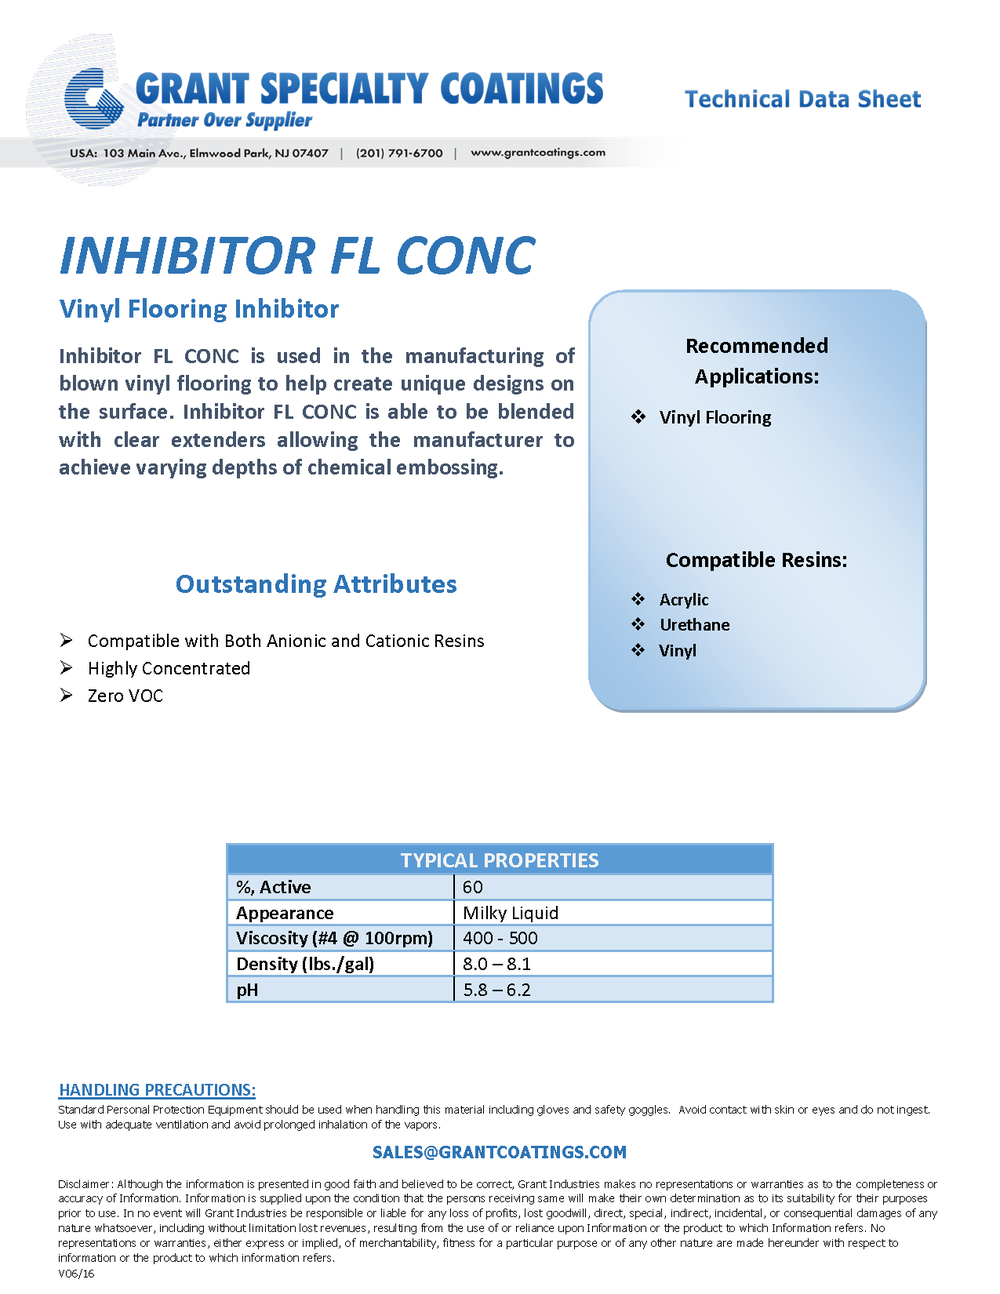 Inhibitor FL Conc for Blown Vinyl Flooring.png